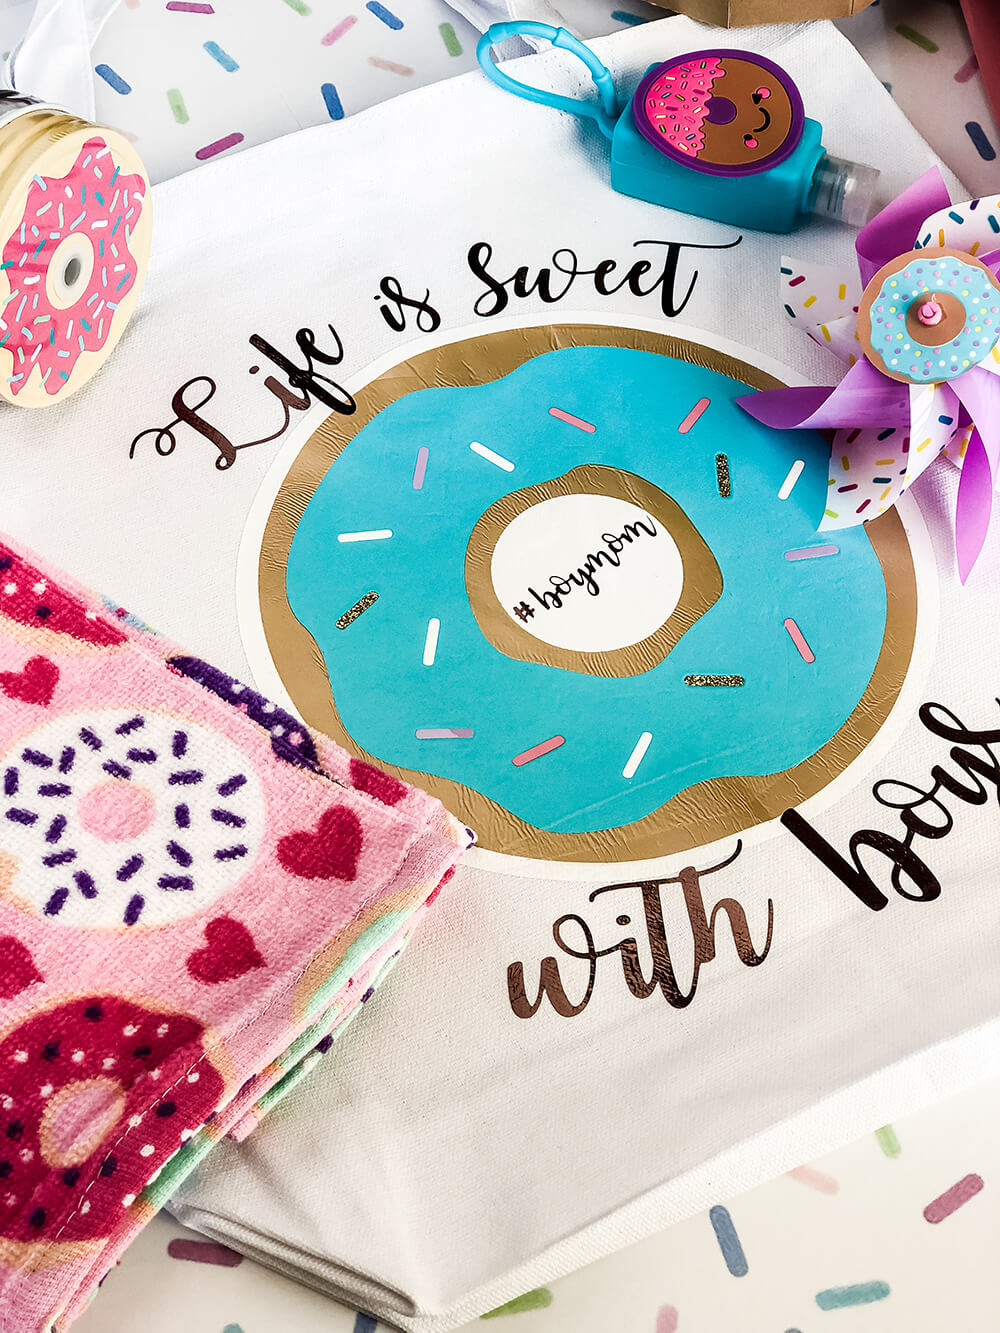 Life is sweet with boys. Boy mom tote bag for donut sprinkle baby shower gift idea